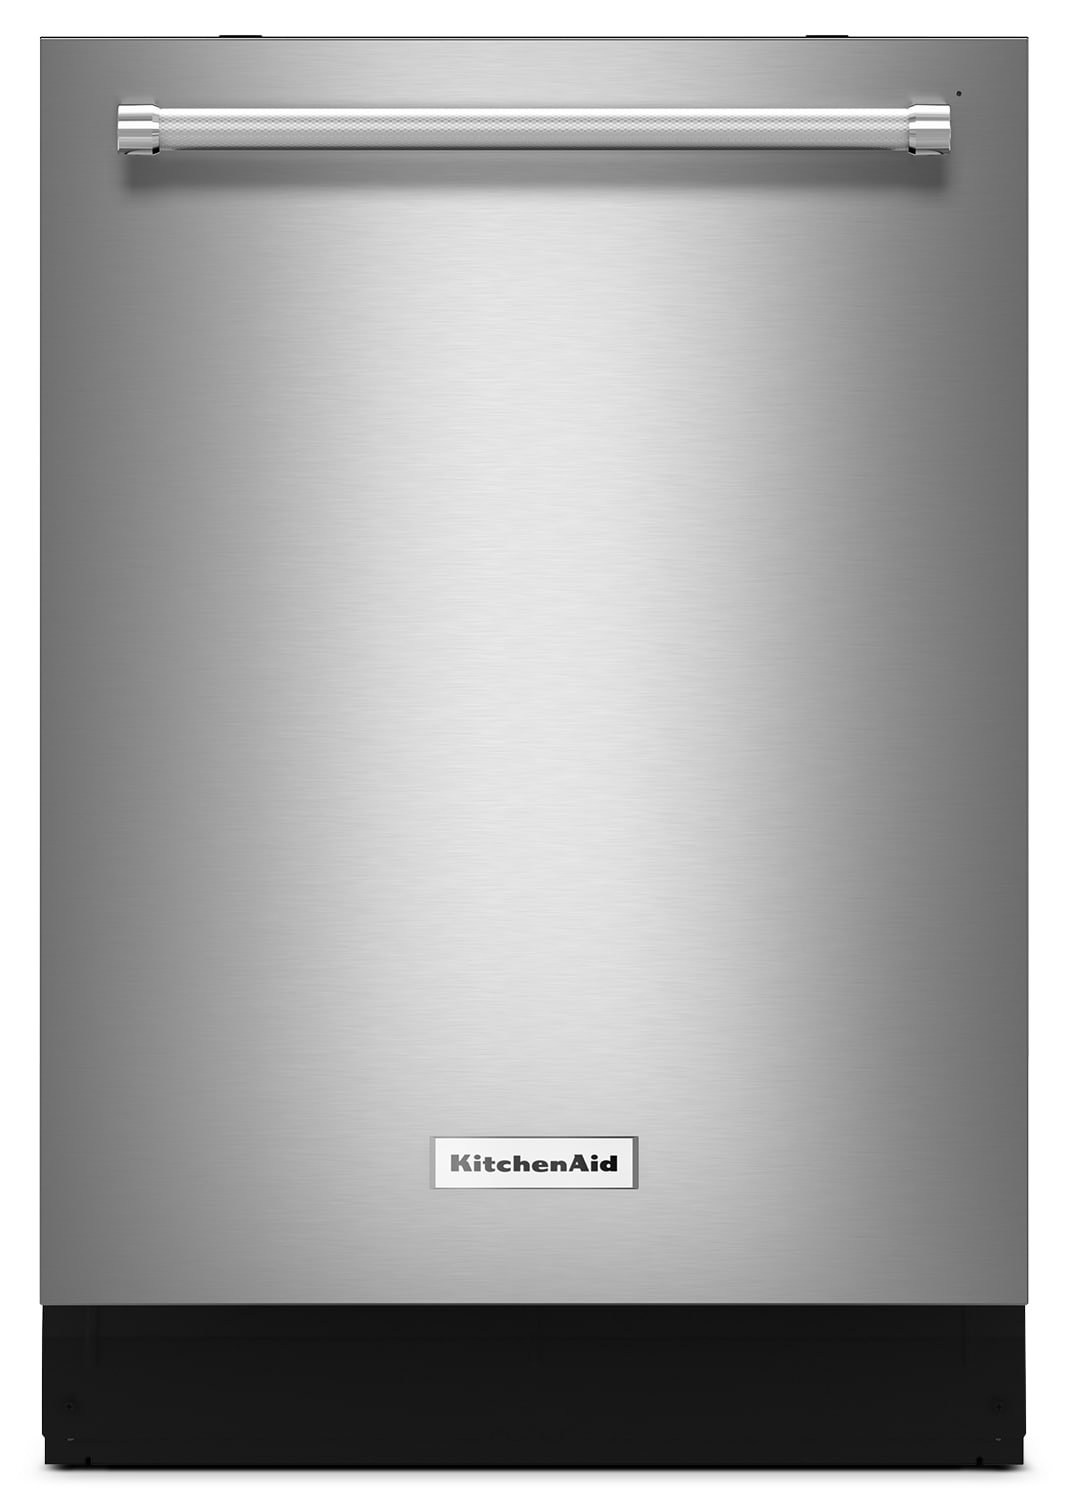 "KitchenAid 24"" Dishwasher with ProWash™ Cycle - Stainless Steel"